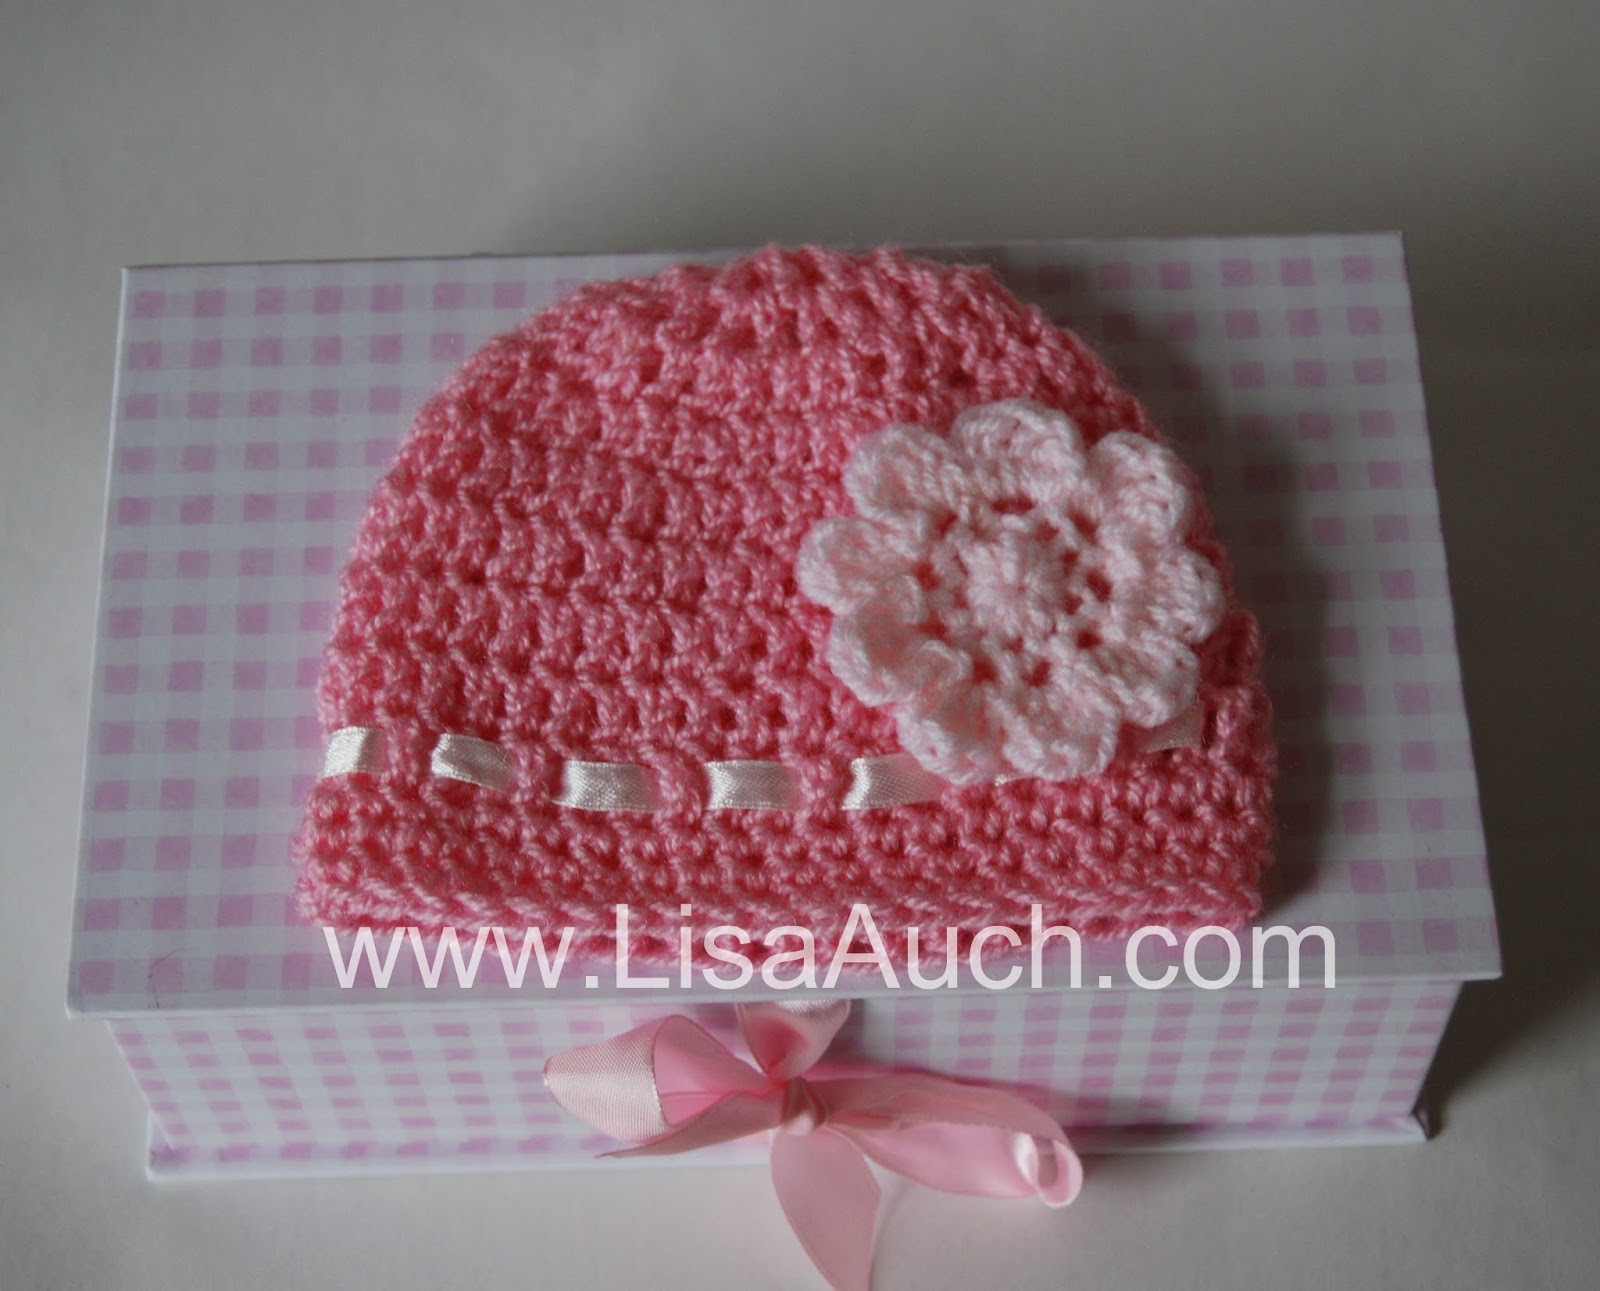 Baby Girl Crochet Patterns Awesome Baby Girl Crochet Hats Free Patterns Of Perfect 45 Models Baby Girl Crochet Patterns